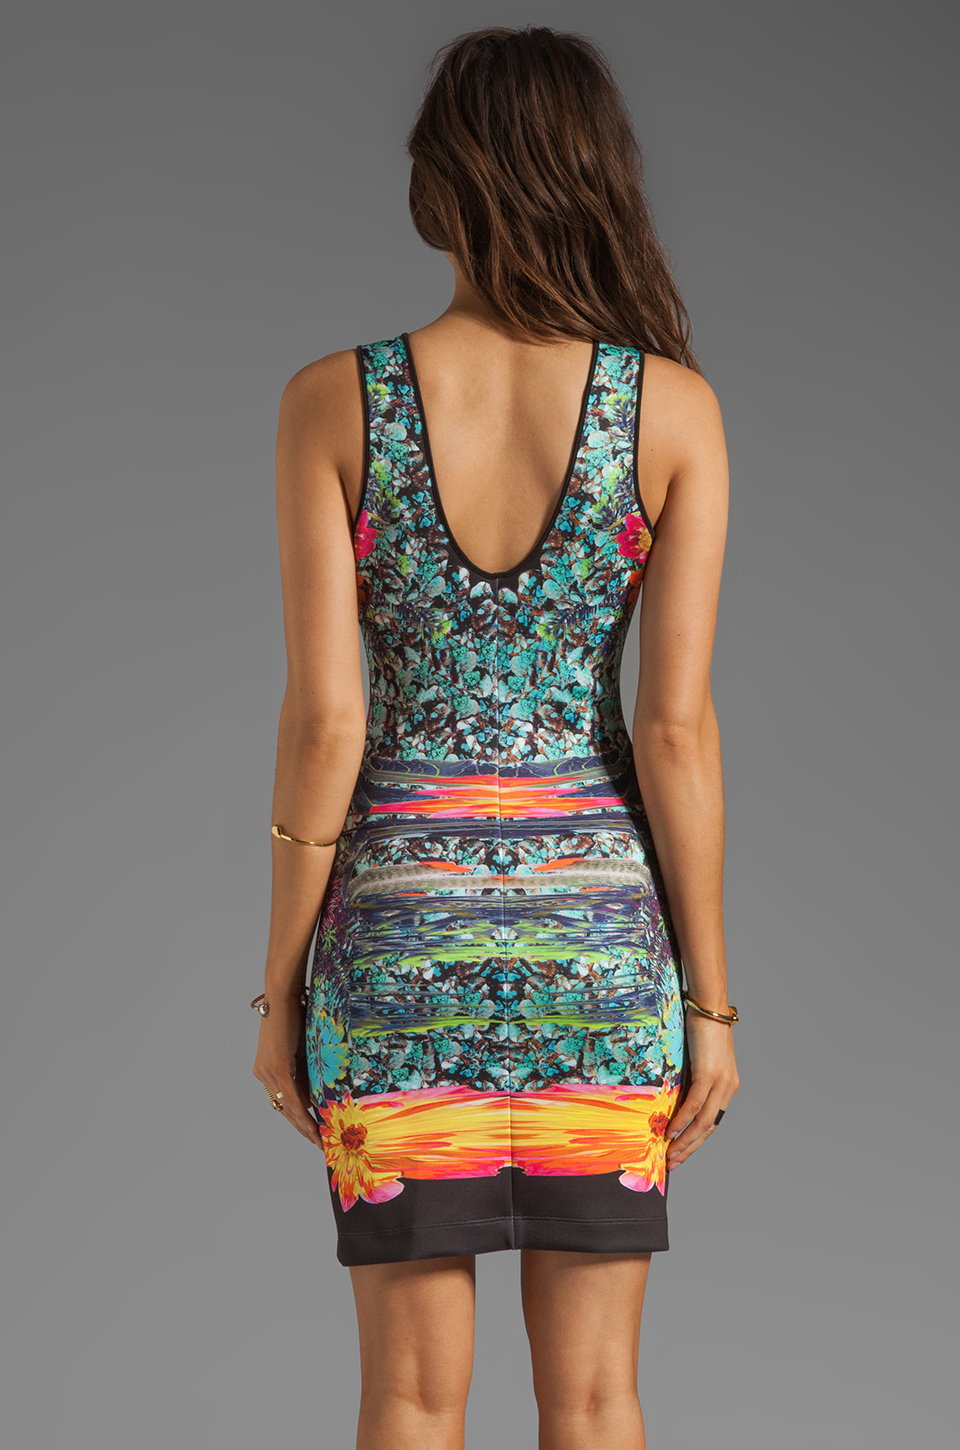 Clover Canyon EXCLUSIVE Turquoise Valley Neoprene Tank Dress in Black Multi